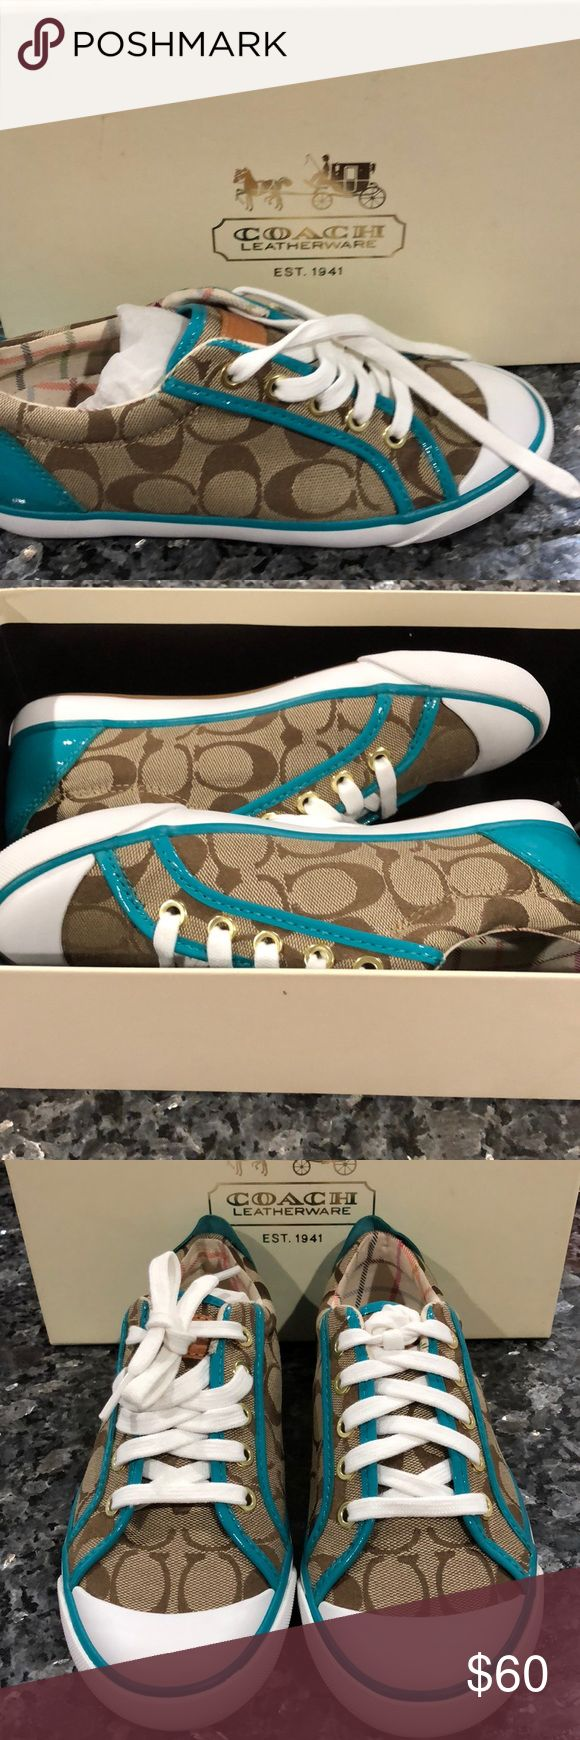 Brand New Coach Sneakers Super cute brand new Coach sneakers! Still in box, never worn. Coach Shoes Sneakers